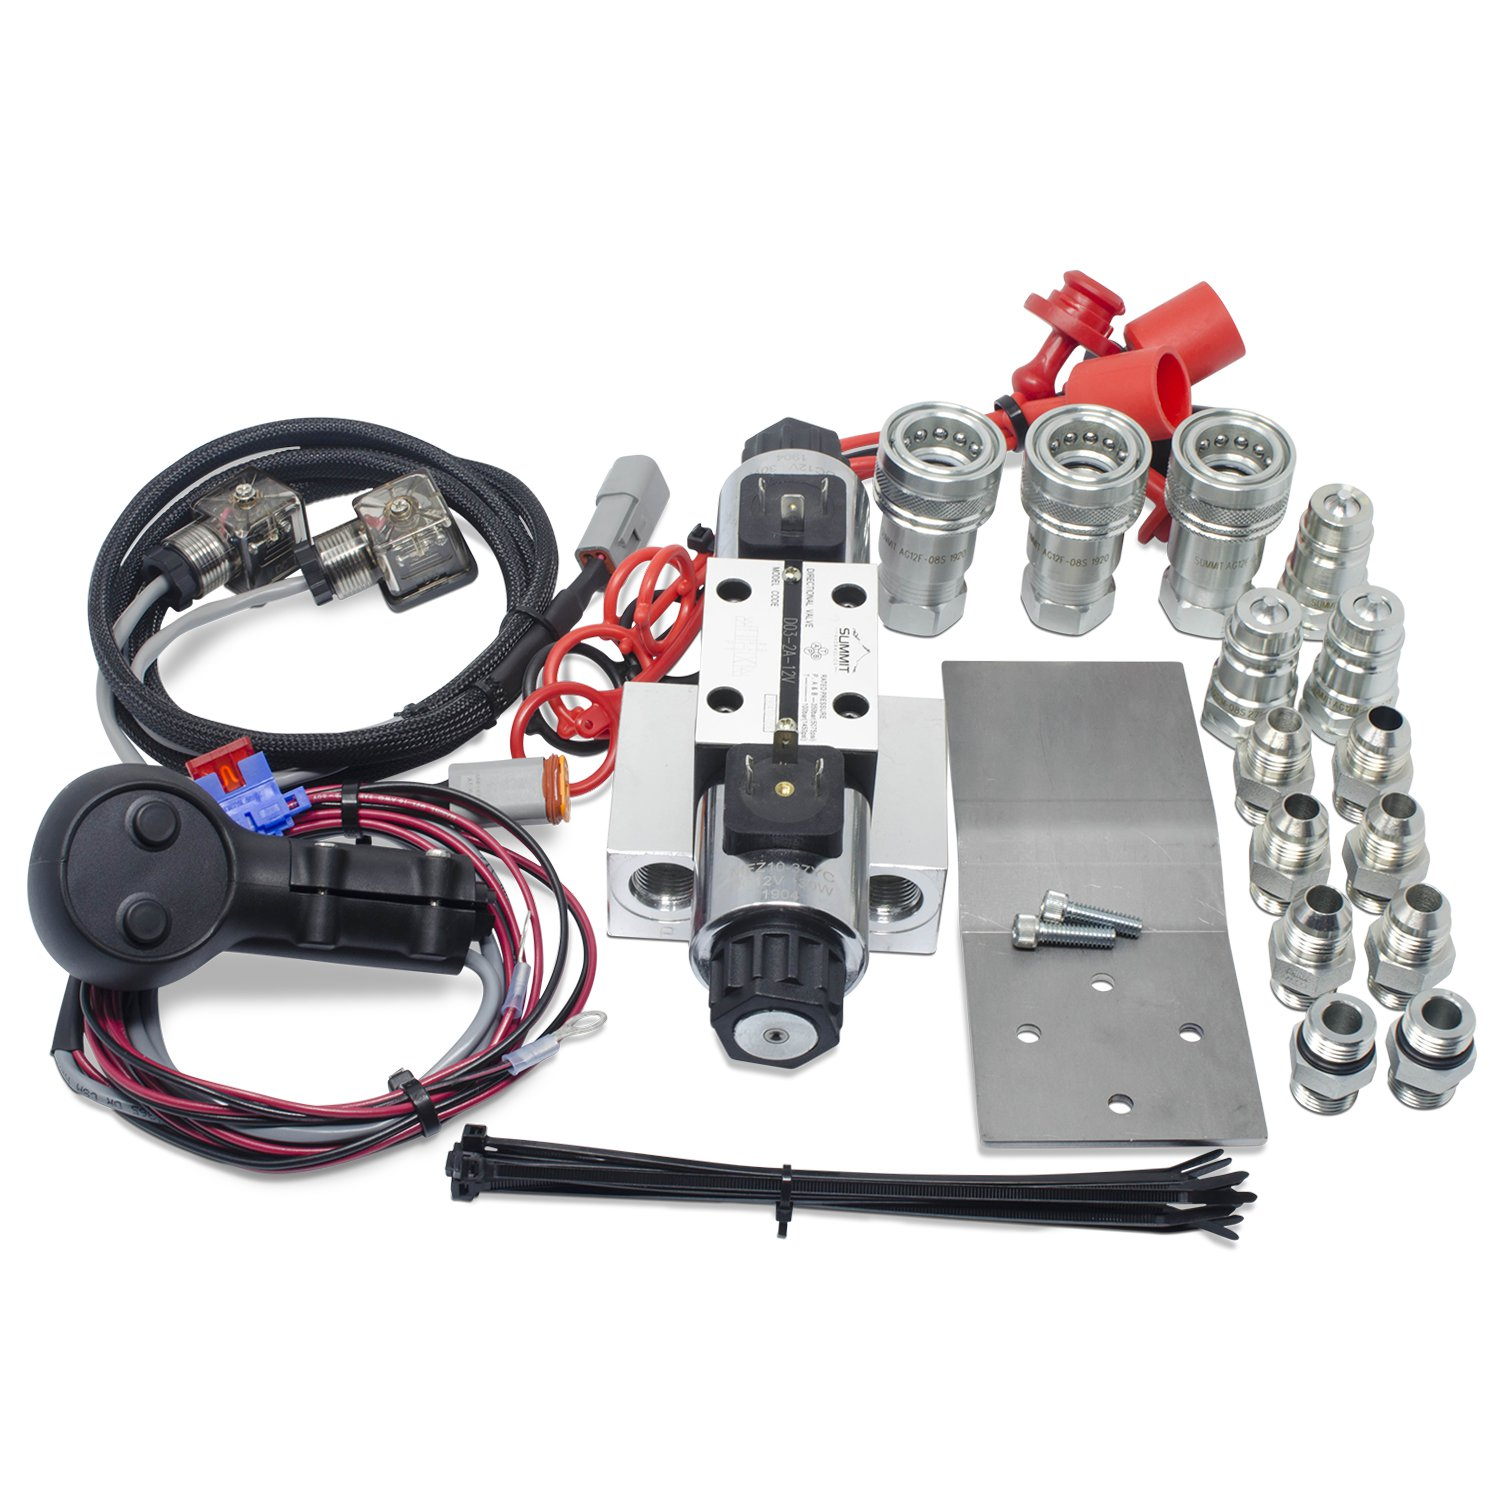 TF-AG12. Universal Hydraulic Third Function Kit